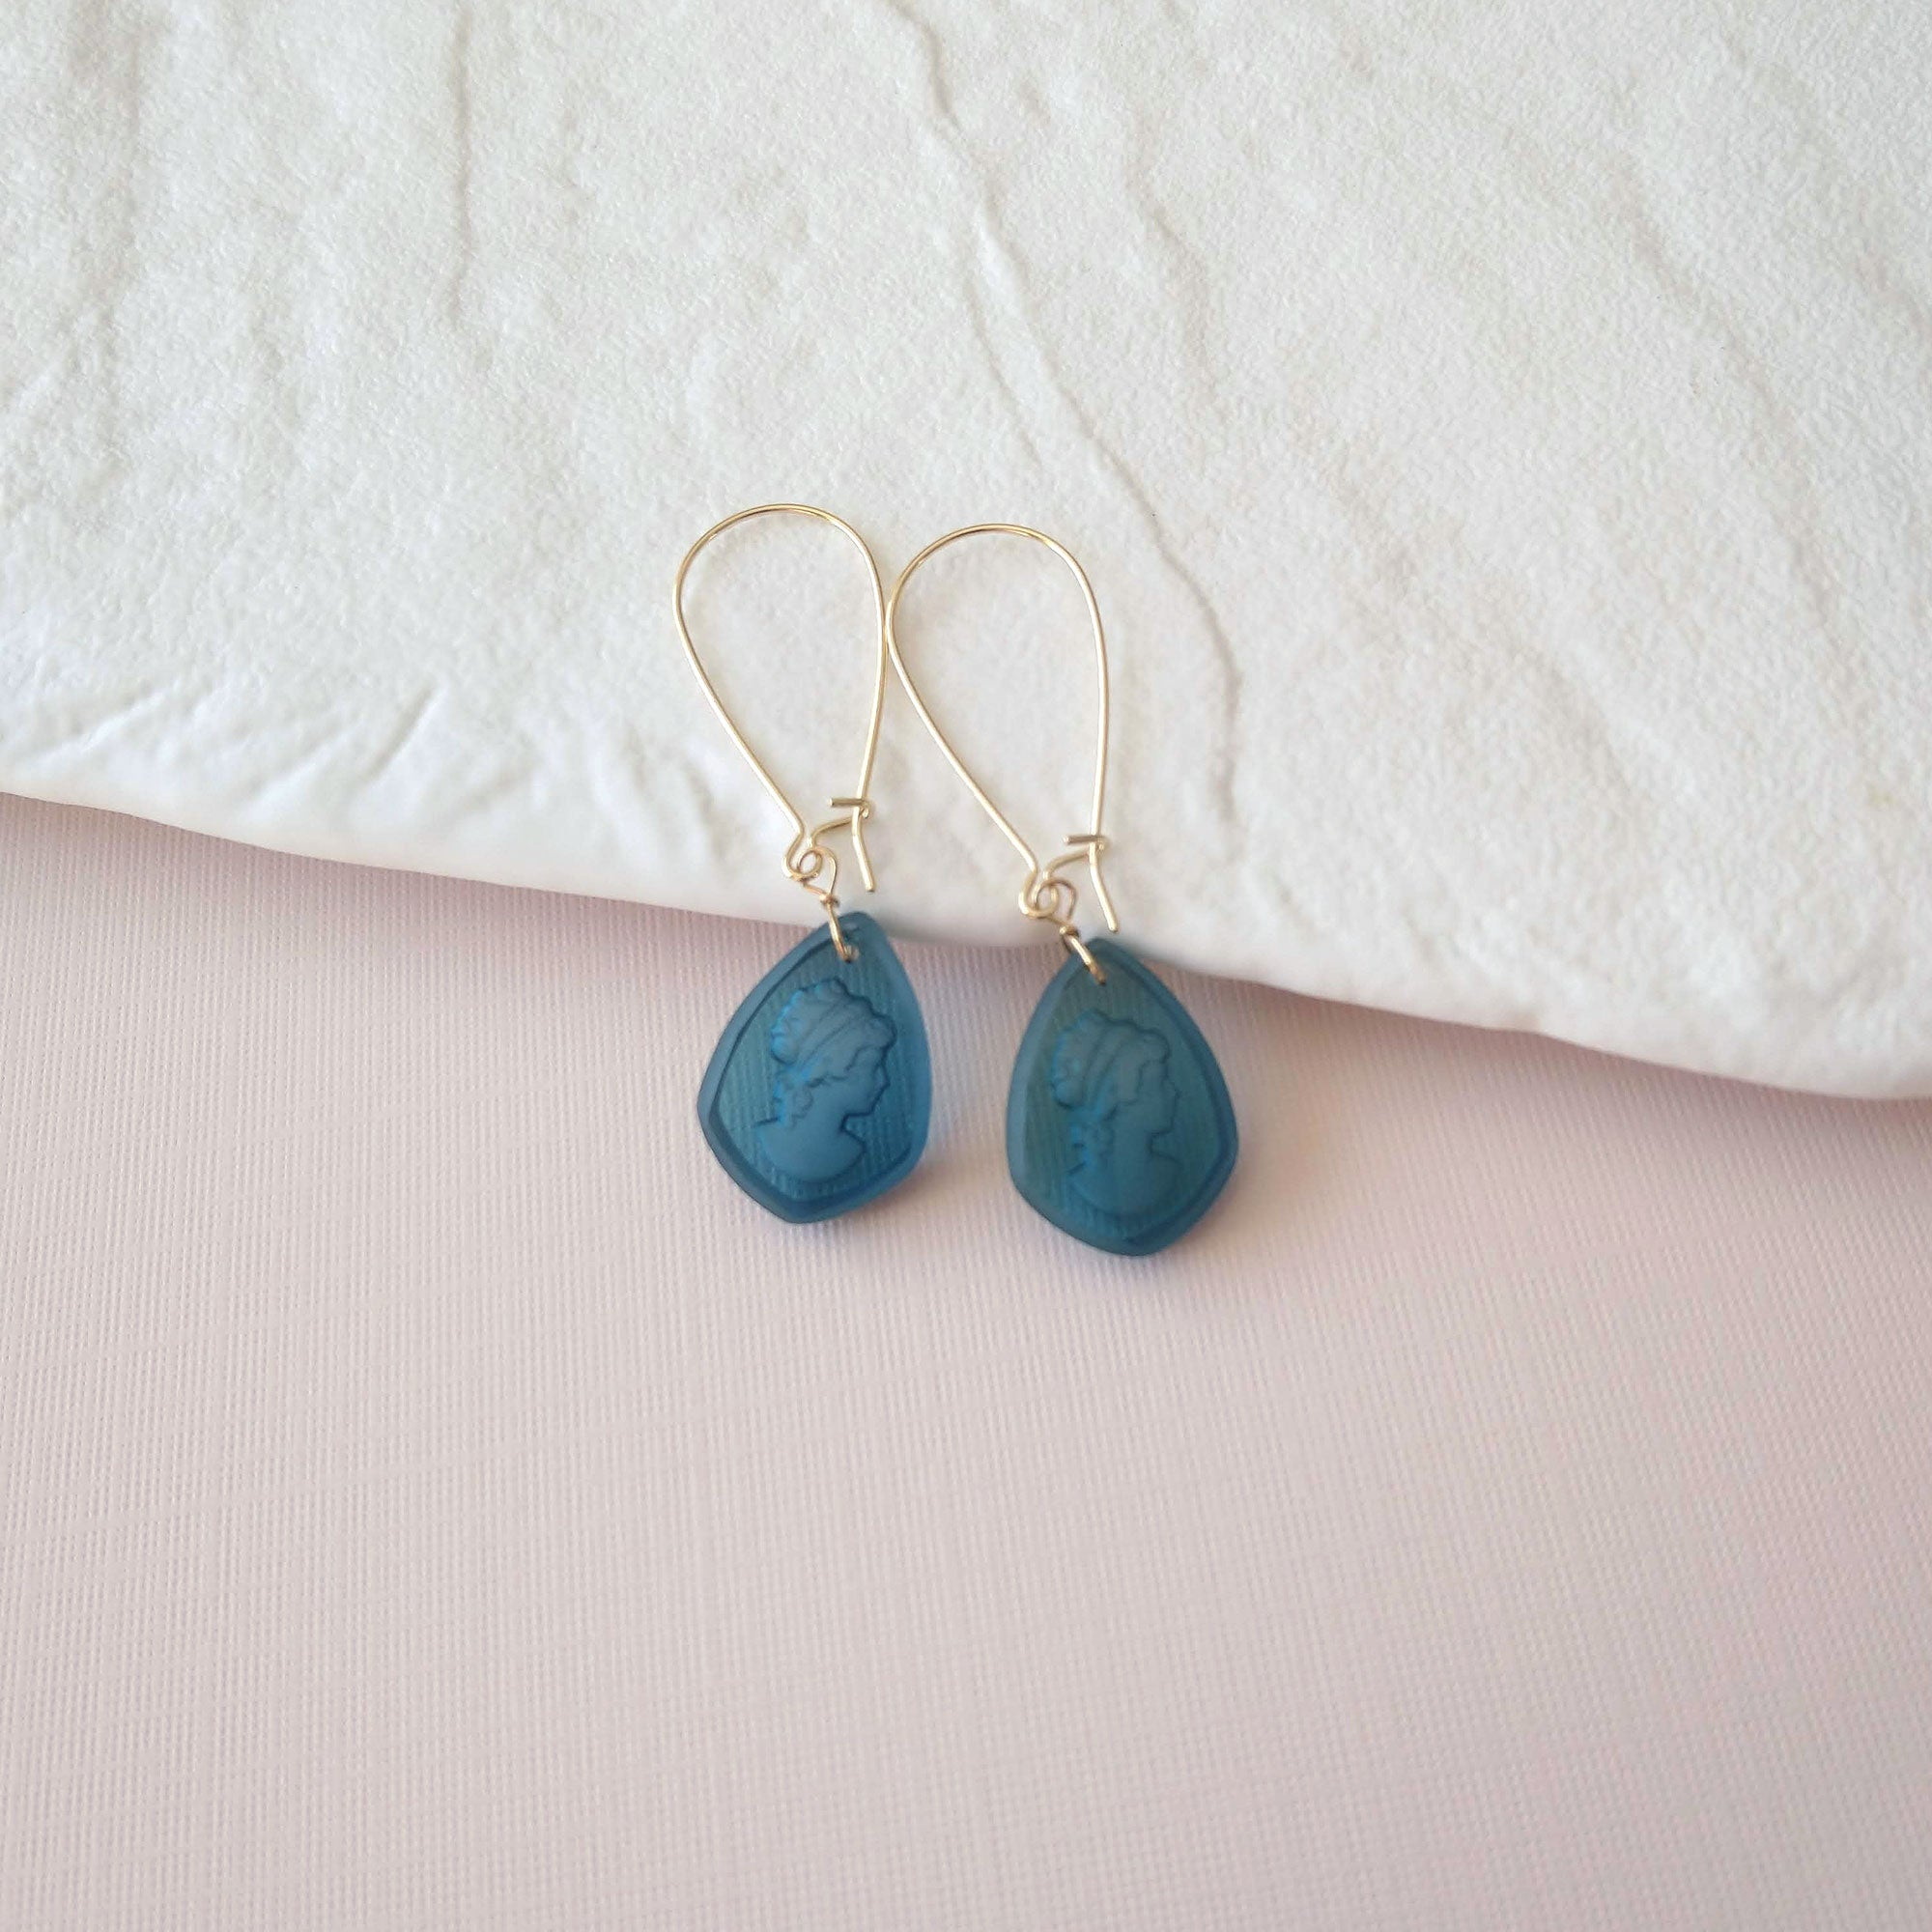 intaglio cameo earrings teal